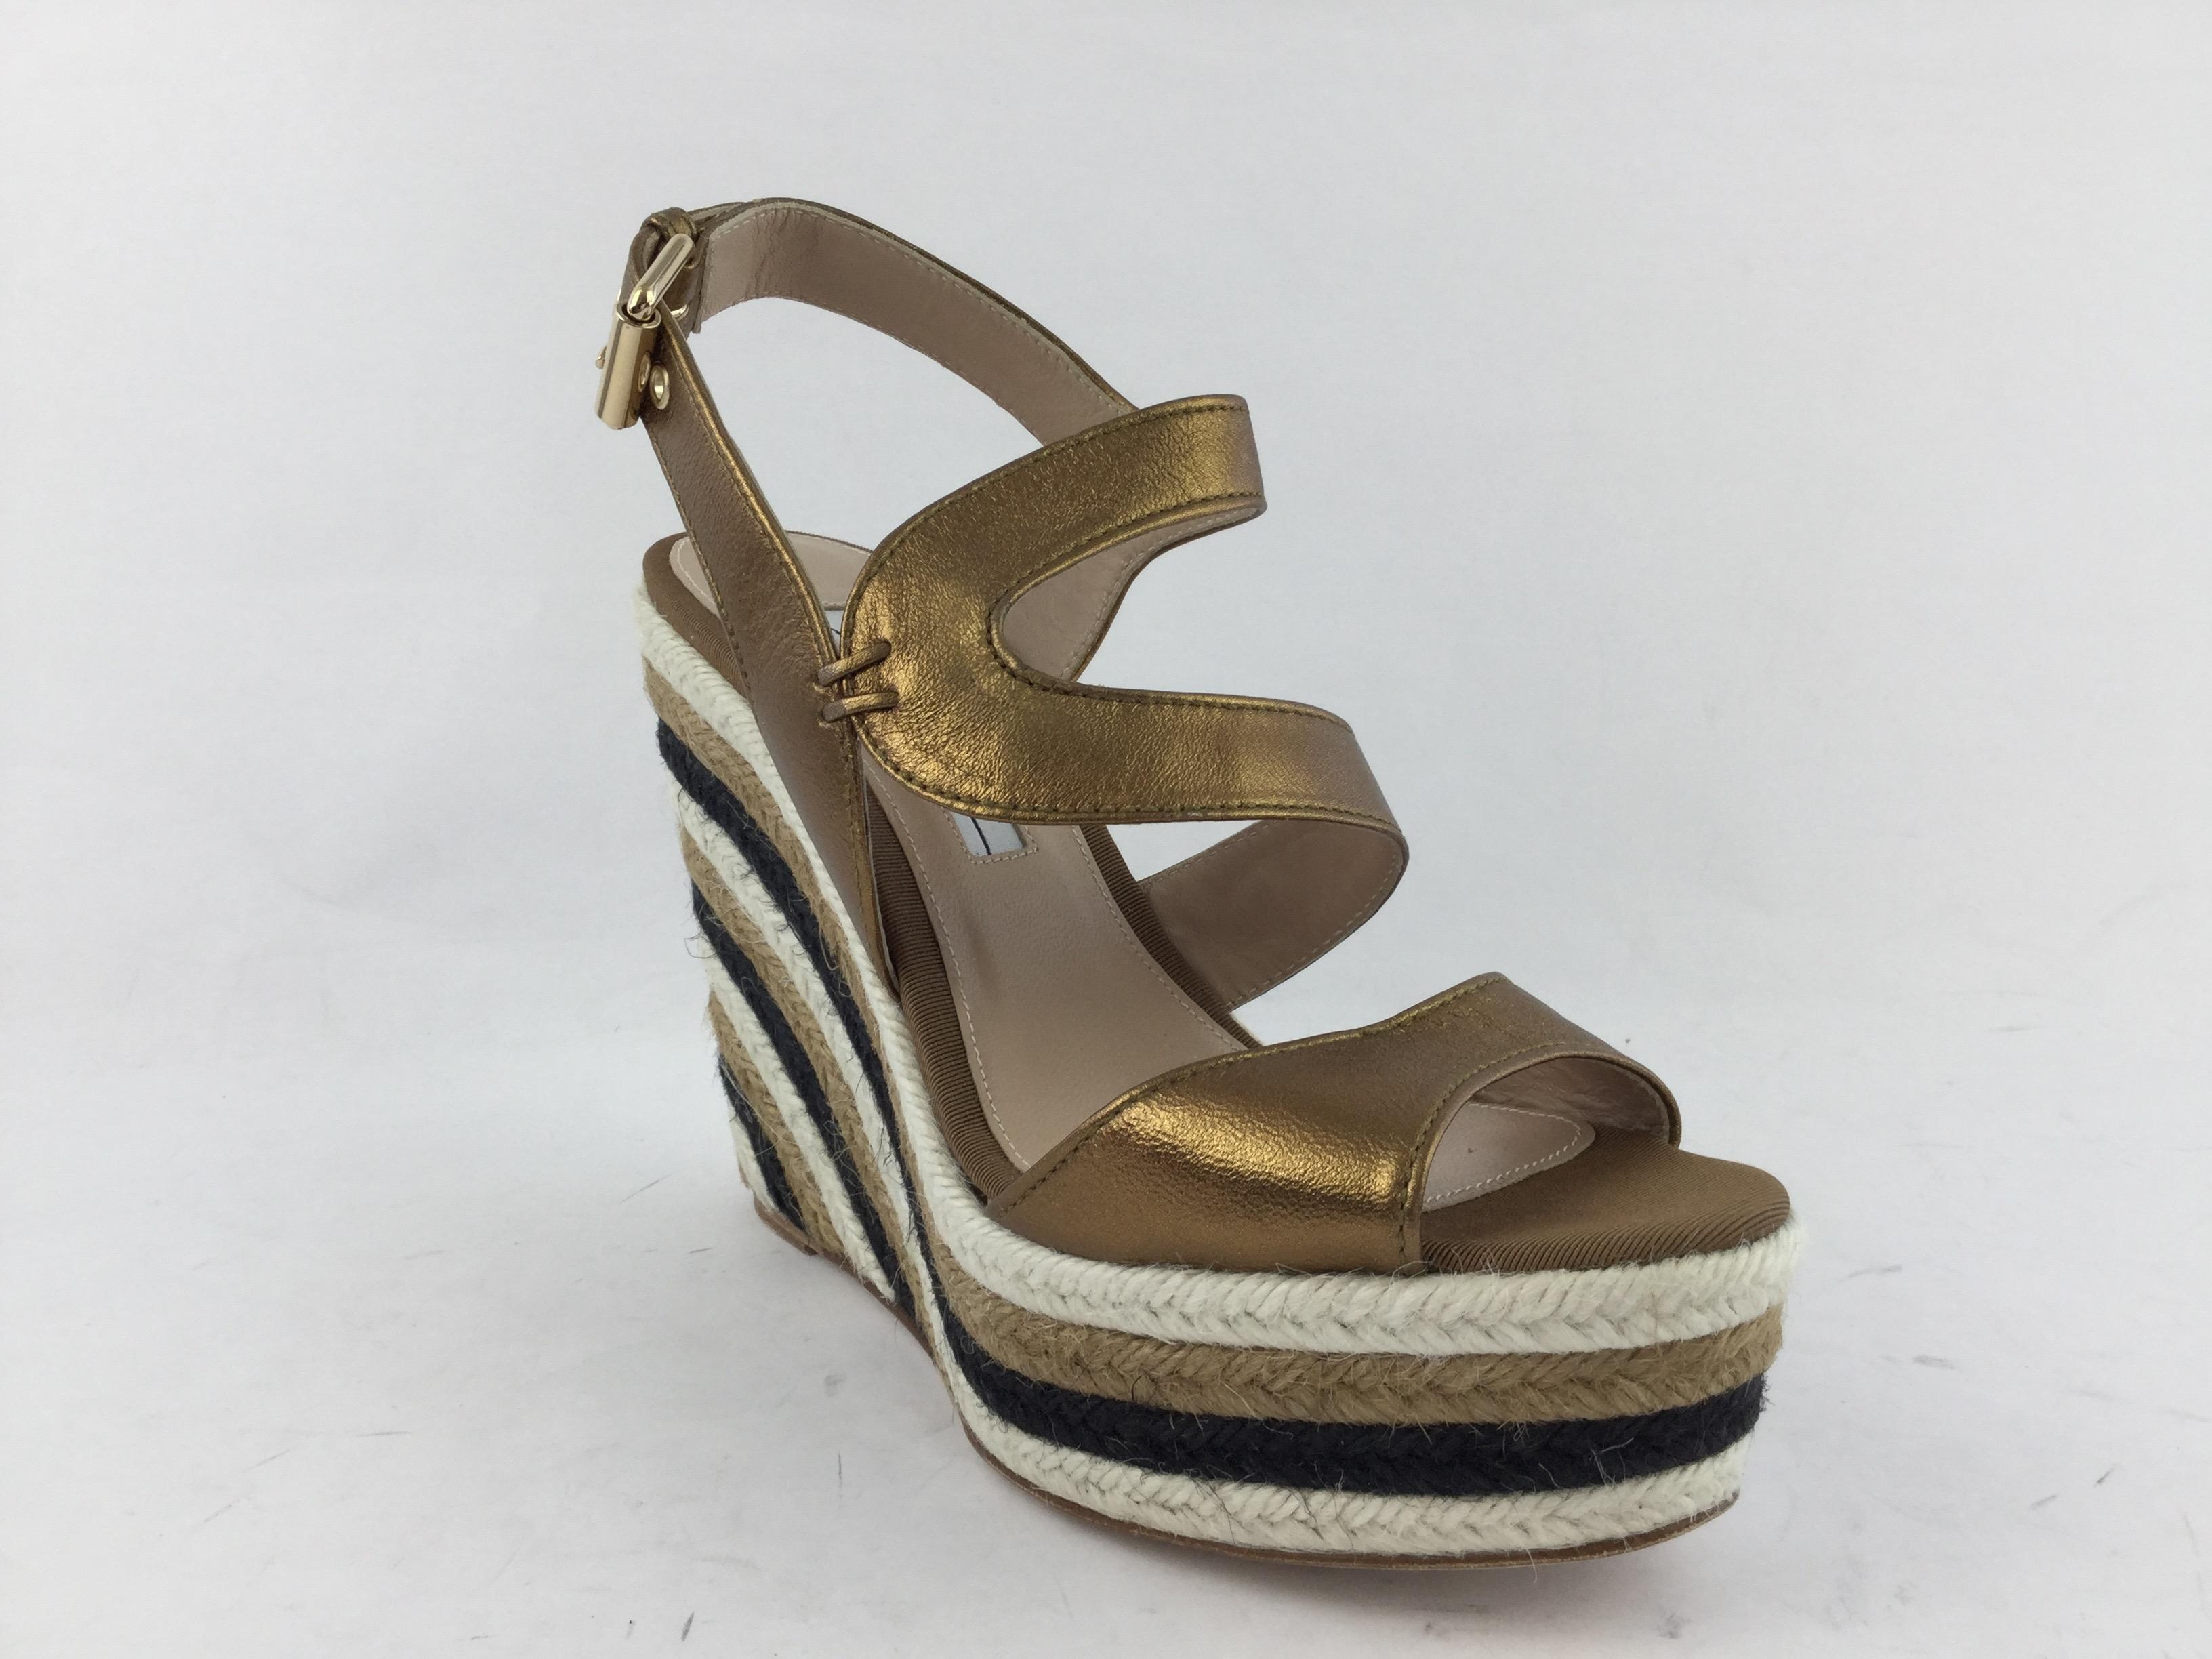 Brian Atwood Metallic Espadrille Wedges hot sale online clearance outlet looking for amazon cheap online discount best place taYsUM2XpW